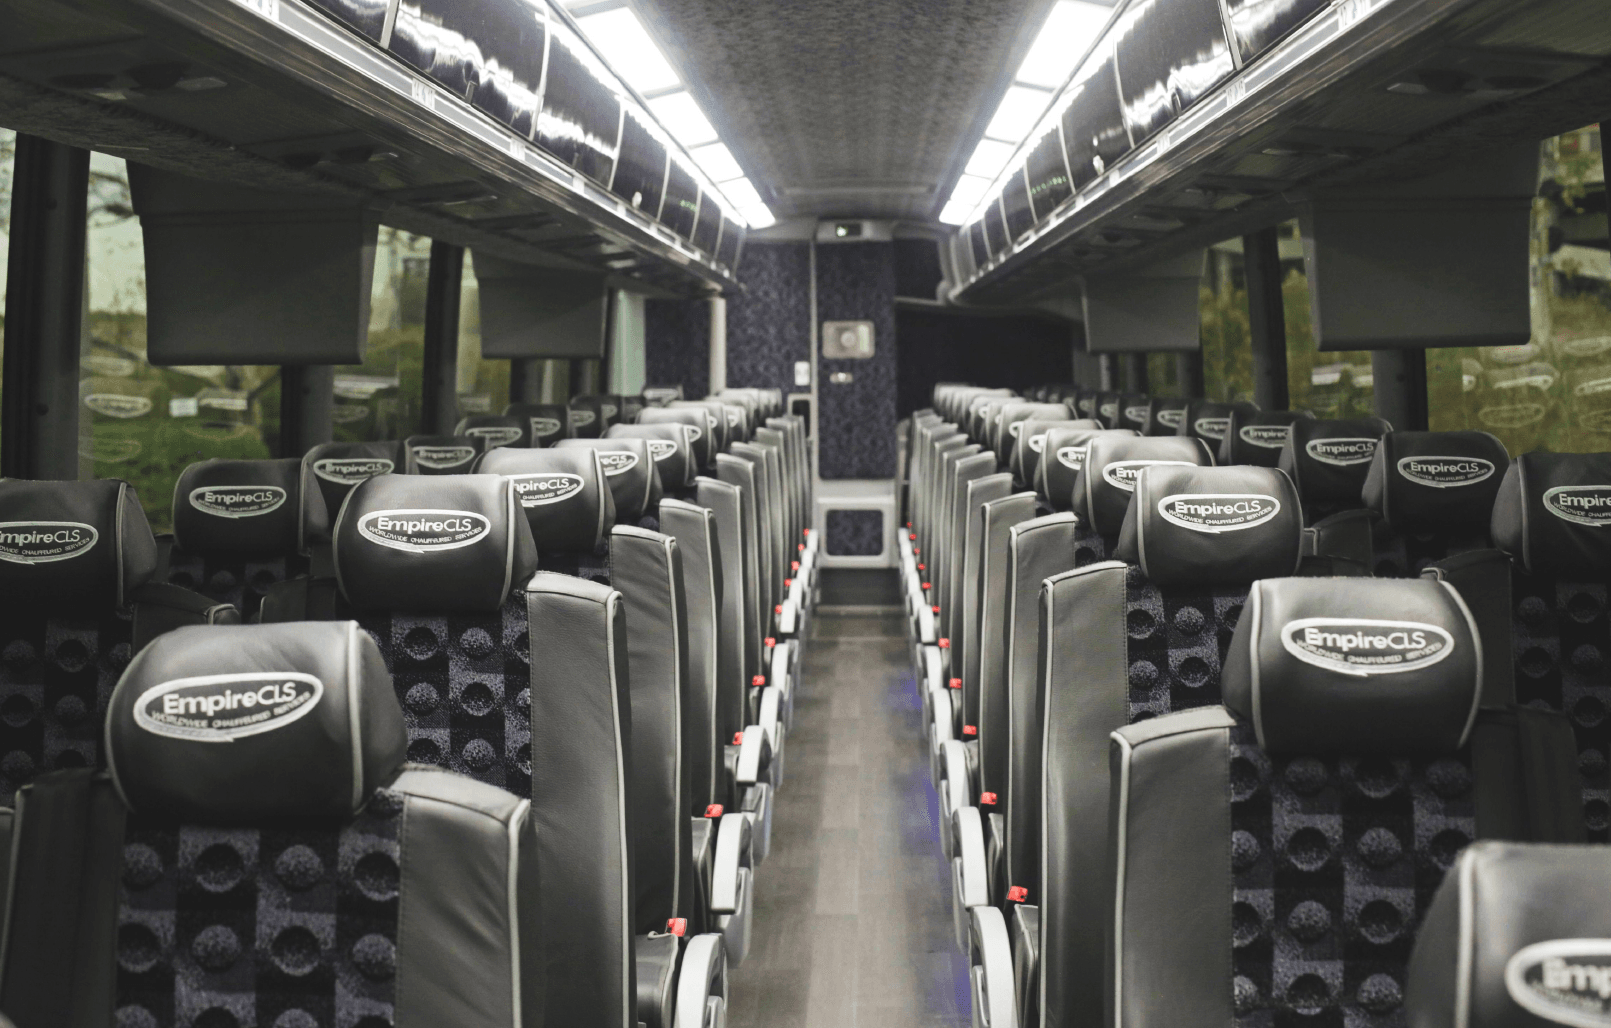 Interior of NYC commuter bus